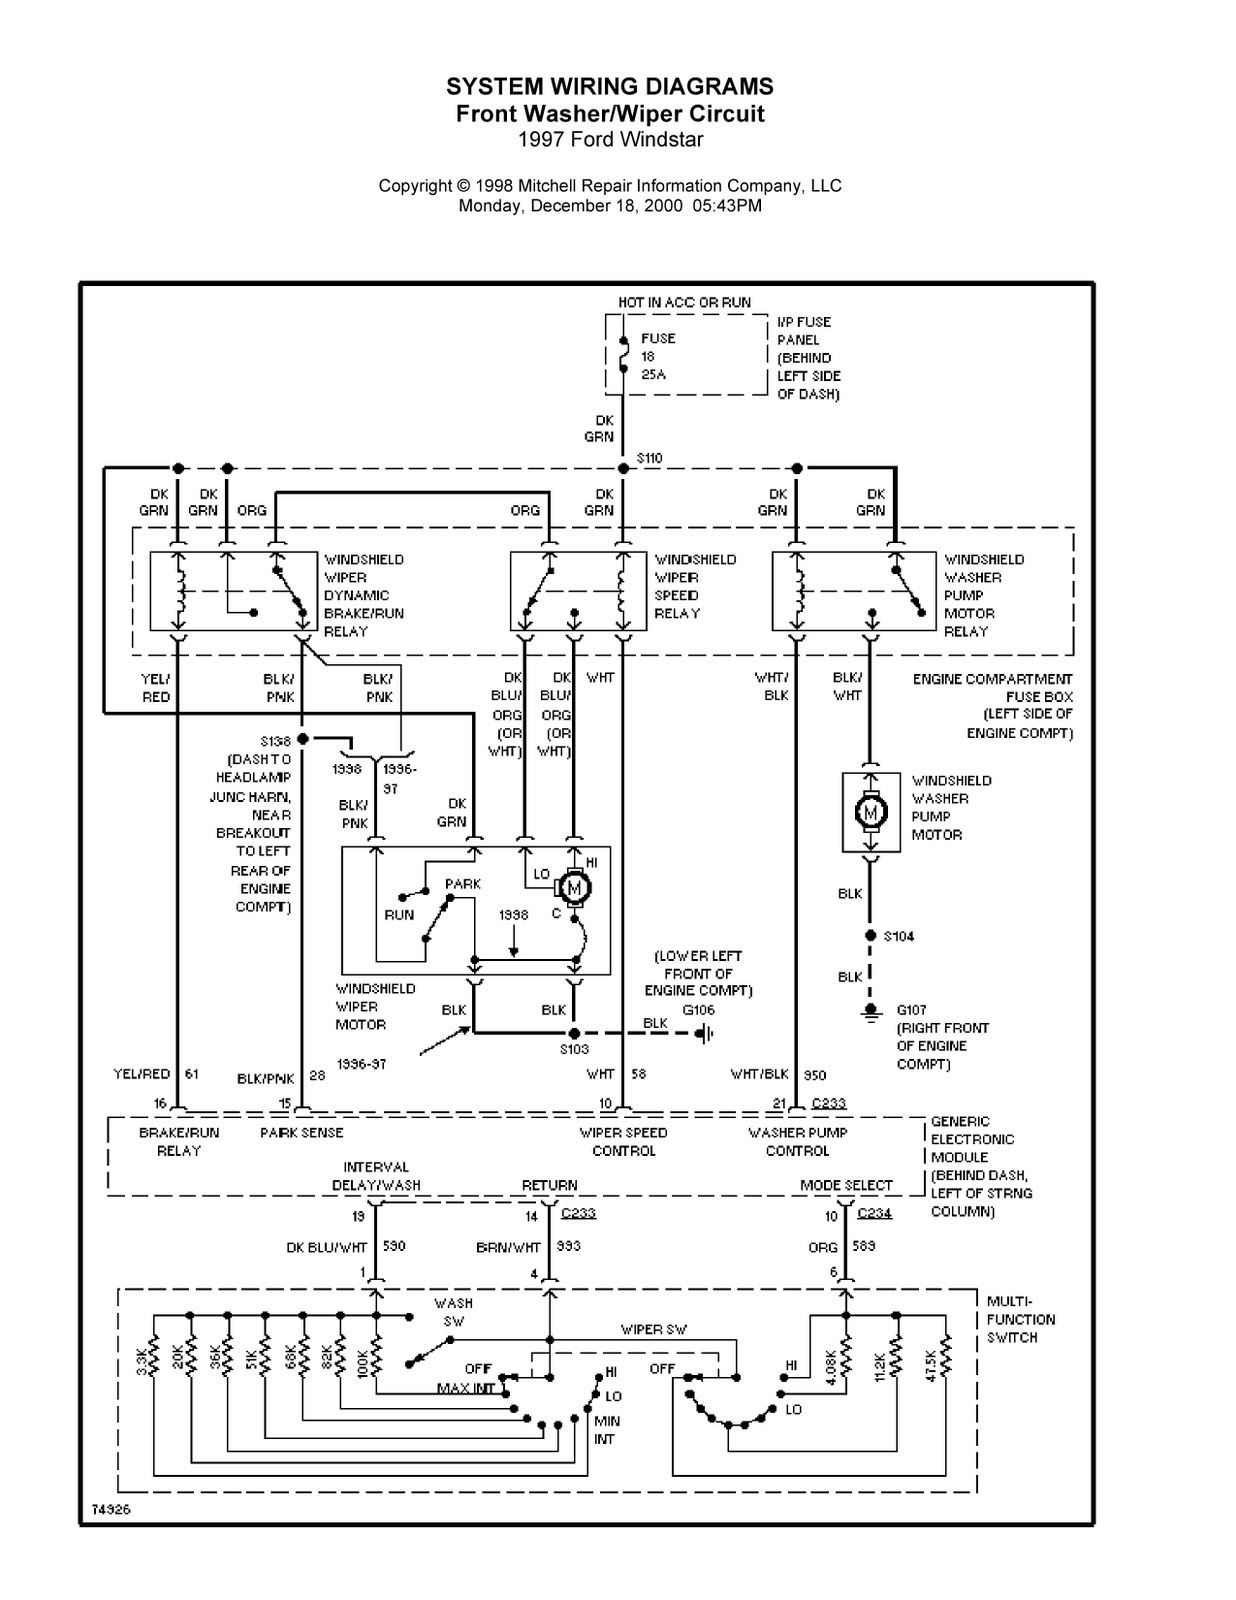 0051 1997 f350 wiring diagram 1997 f350 pcm wiring diagram \u2022 wiring 84 Ford Thunderbird Wiring Diagram at bakdesigns.co